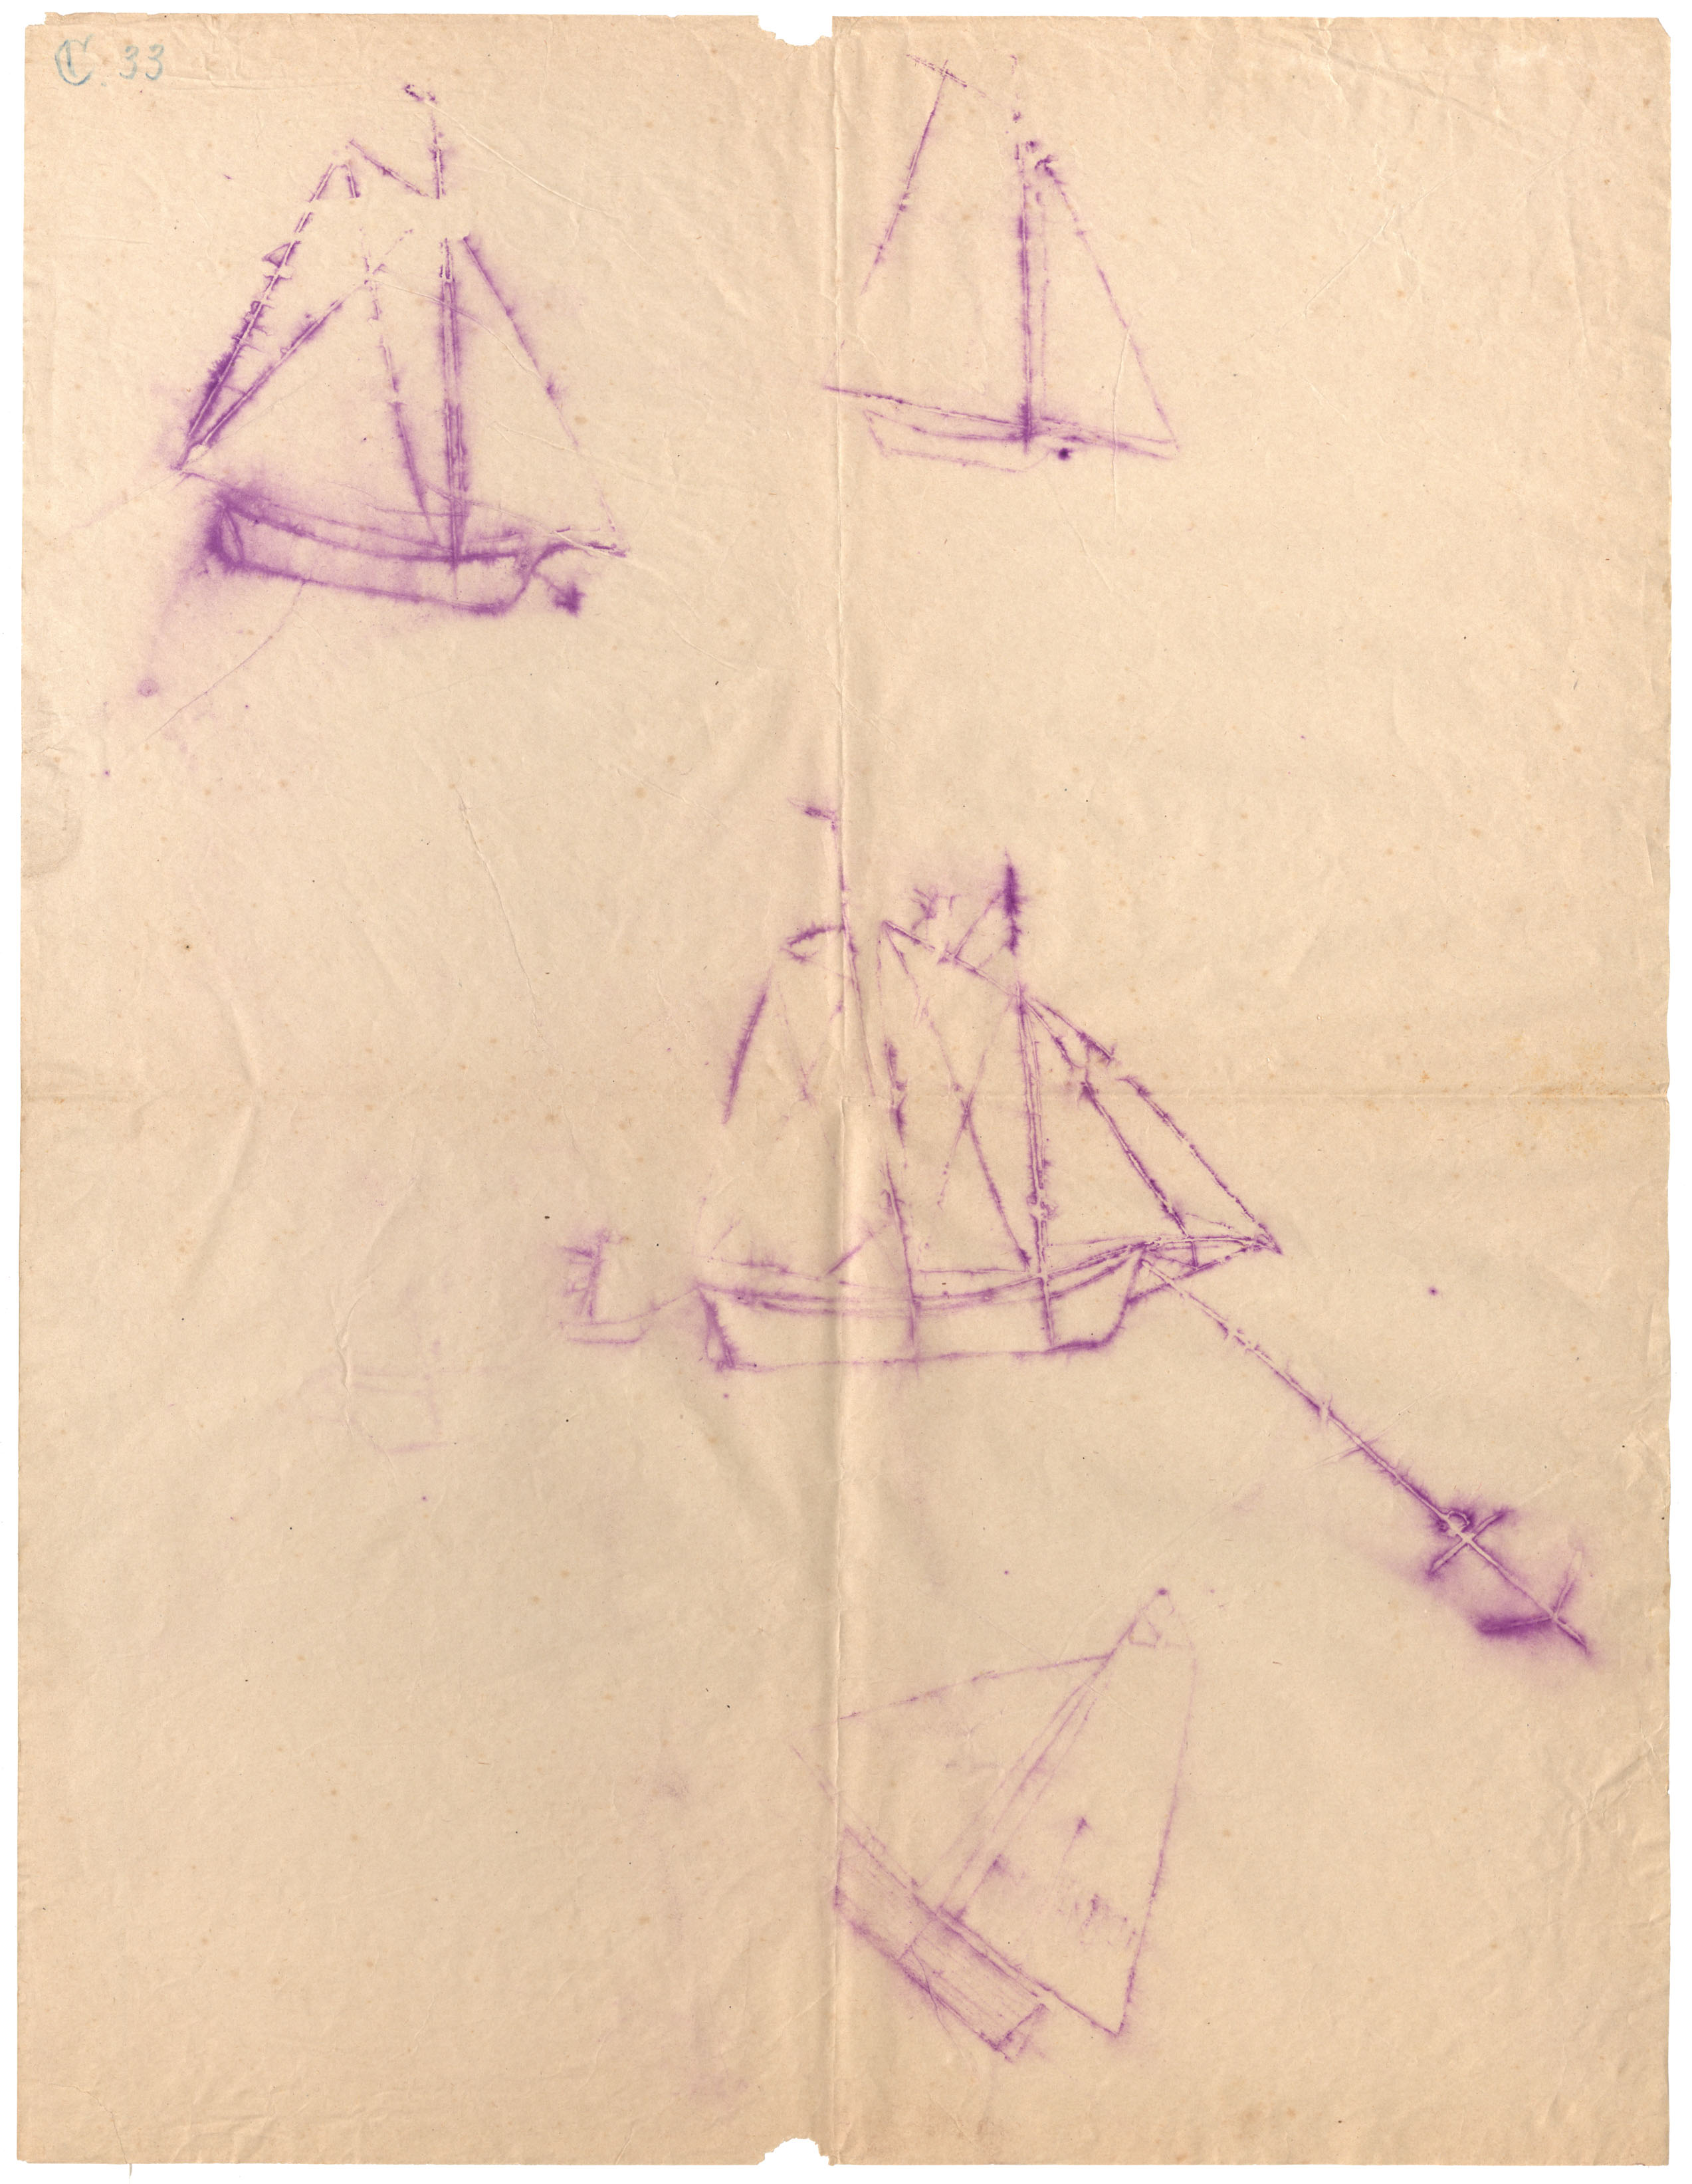 Tracing of petroglyphs of four different boats, one with a dropped anchor